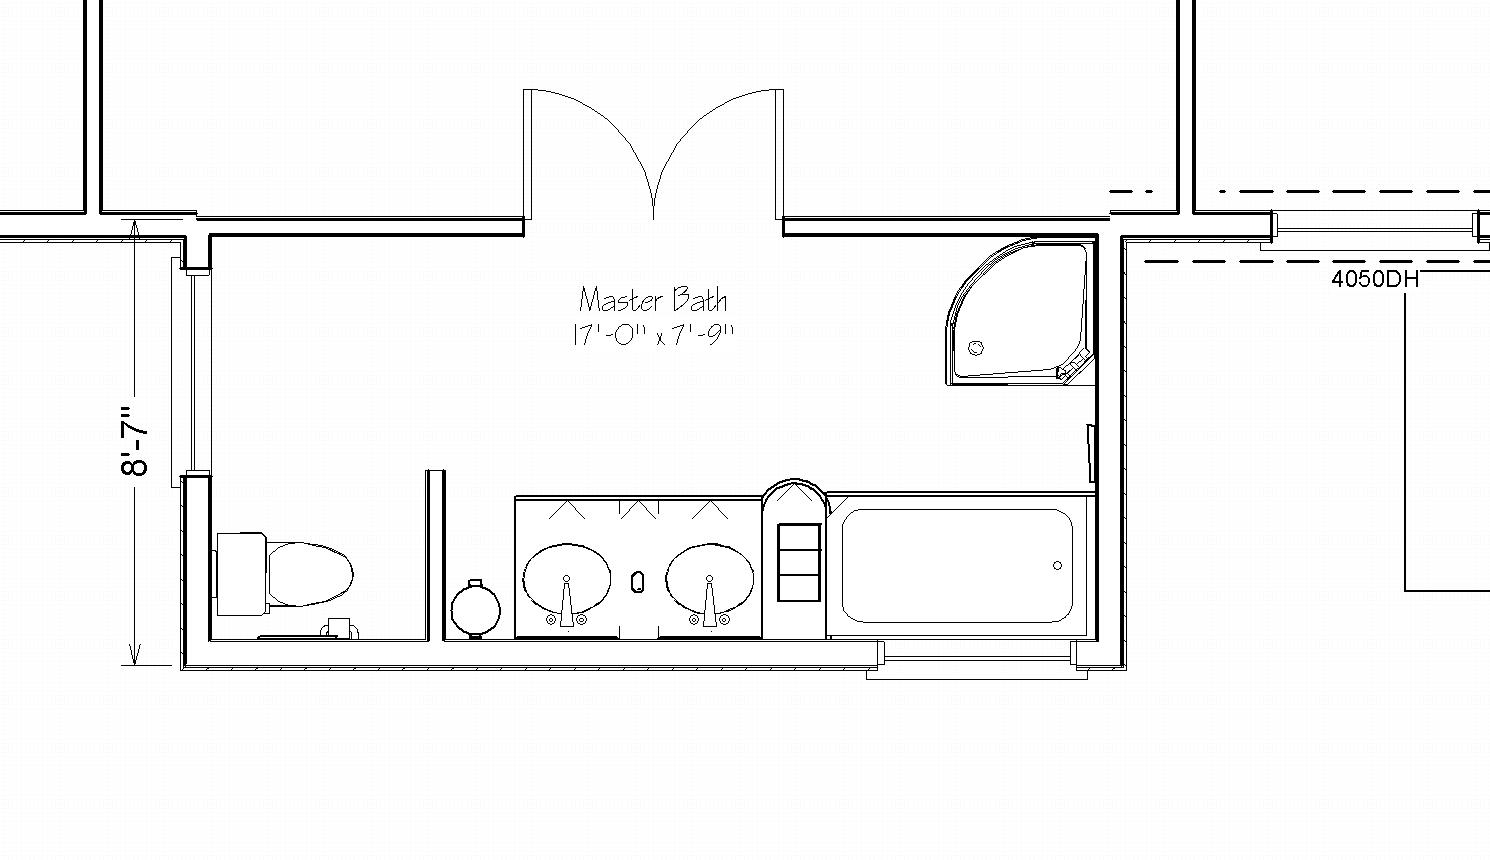 Master bathroom floor plans - House Plans With Mother In Law Suites Best House Design Ideas Small Master Bathroom Floor